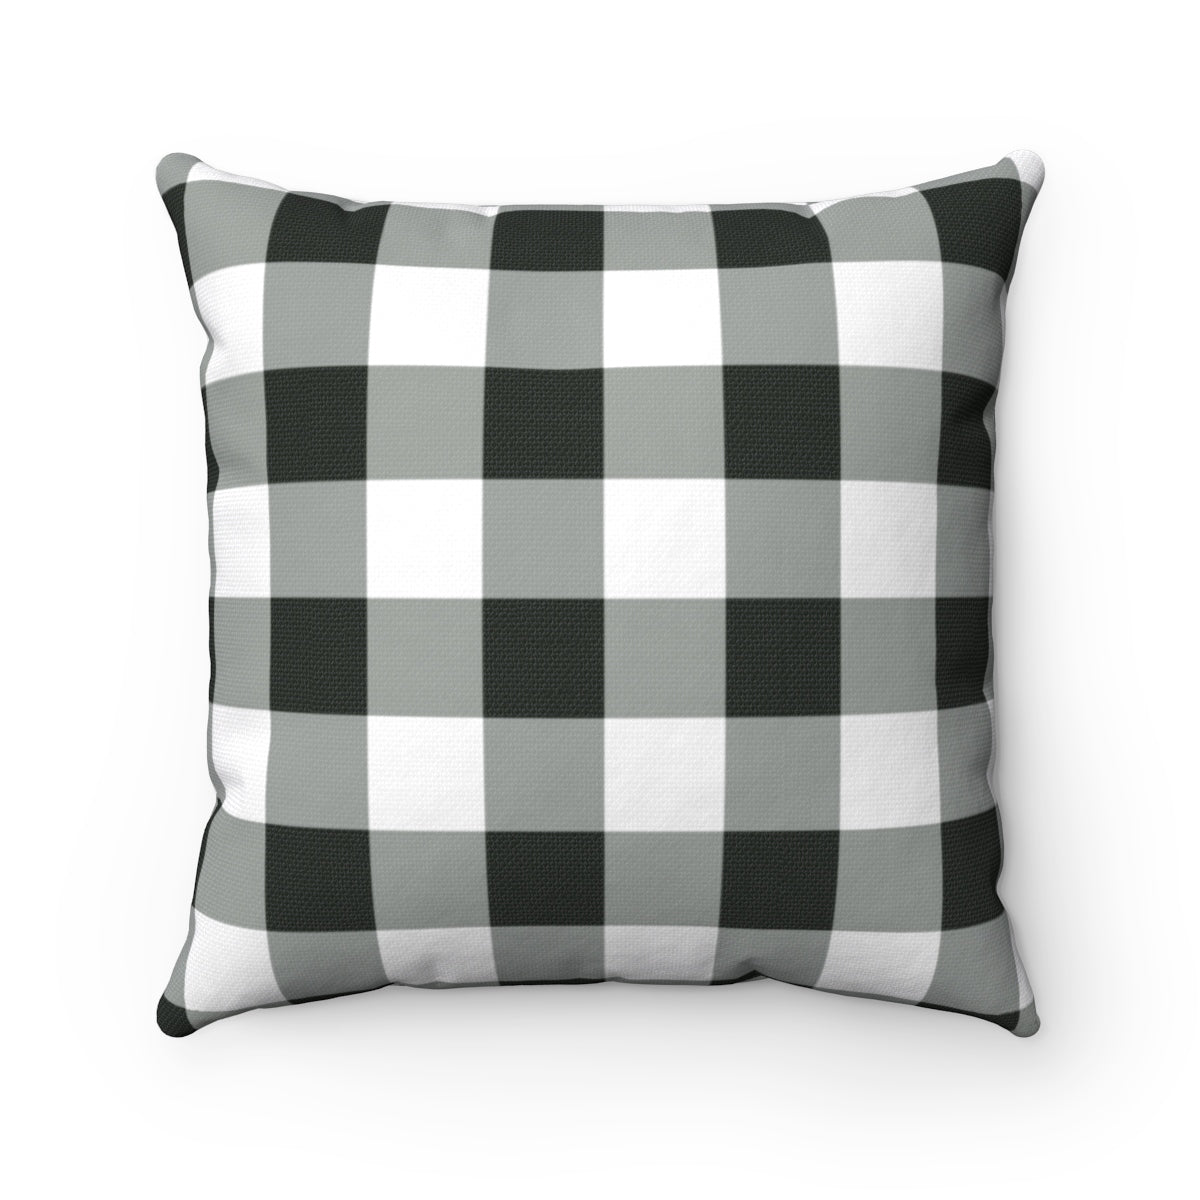 Buffalo Plaid Pillow Case, Square Black and White Throw Check Decorative Cover - Starcove Design